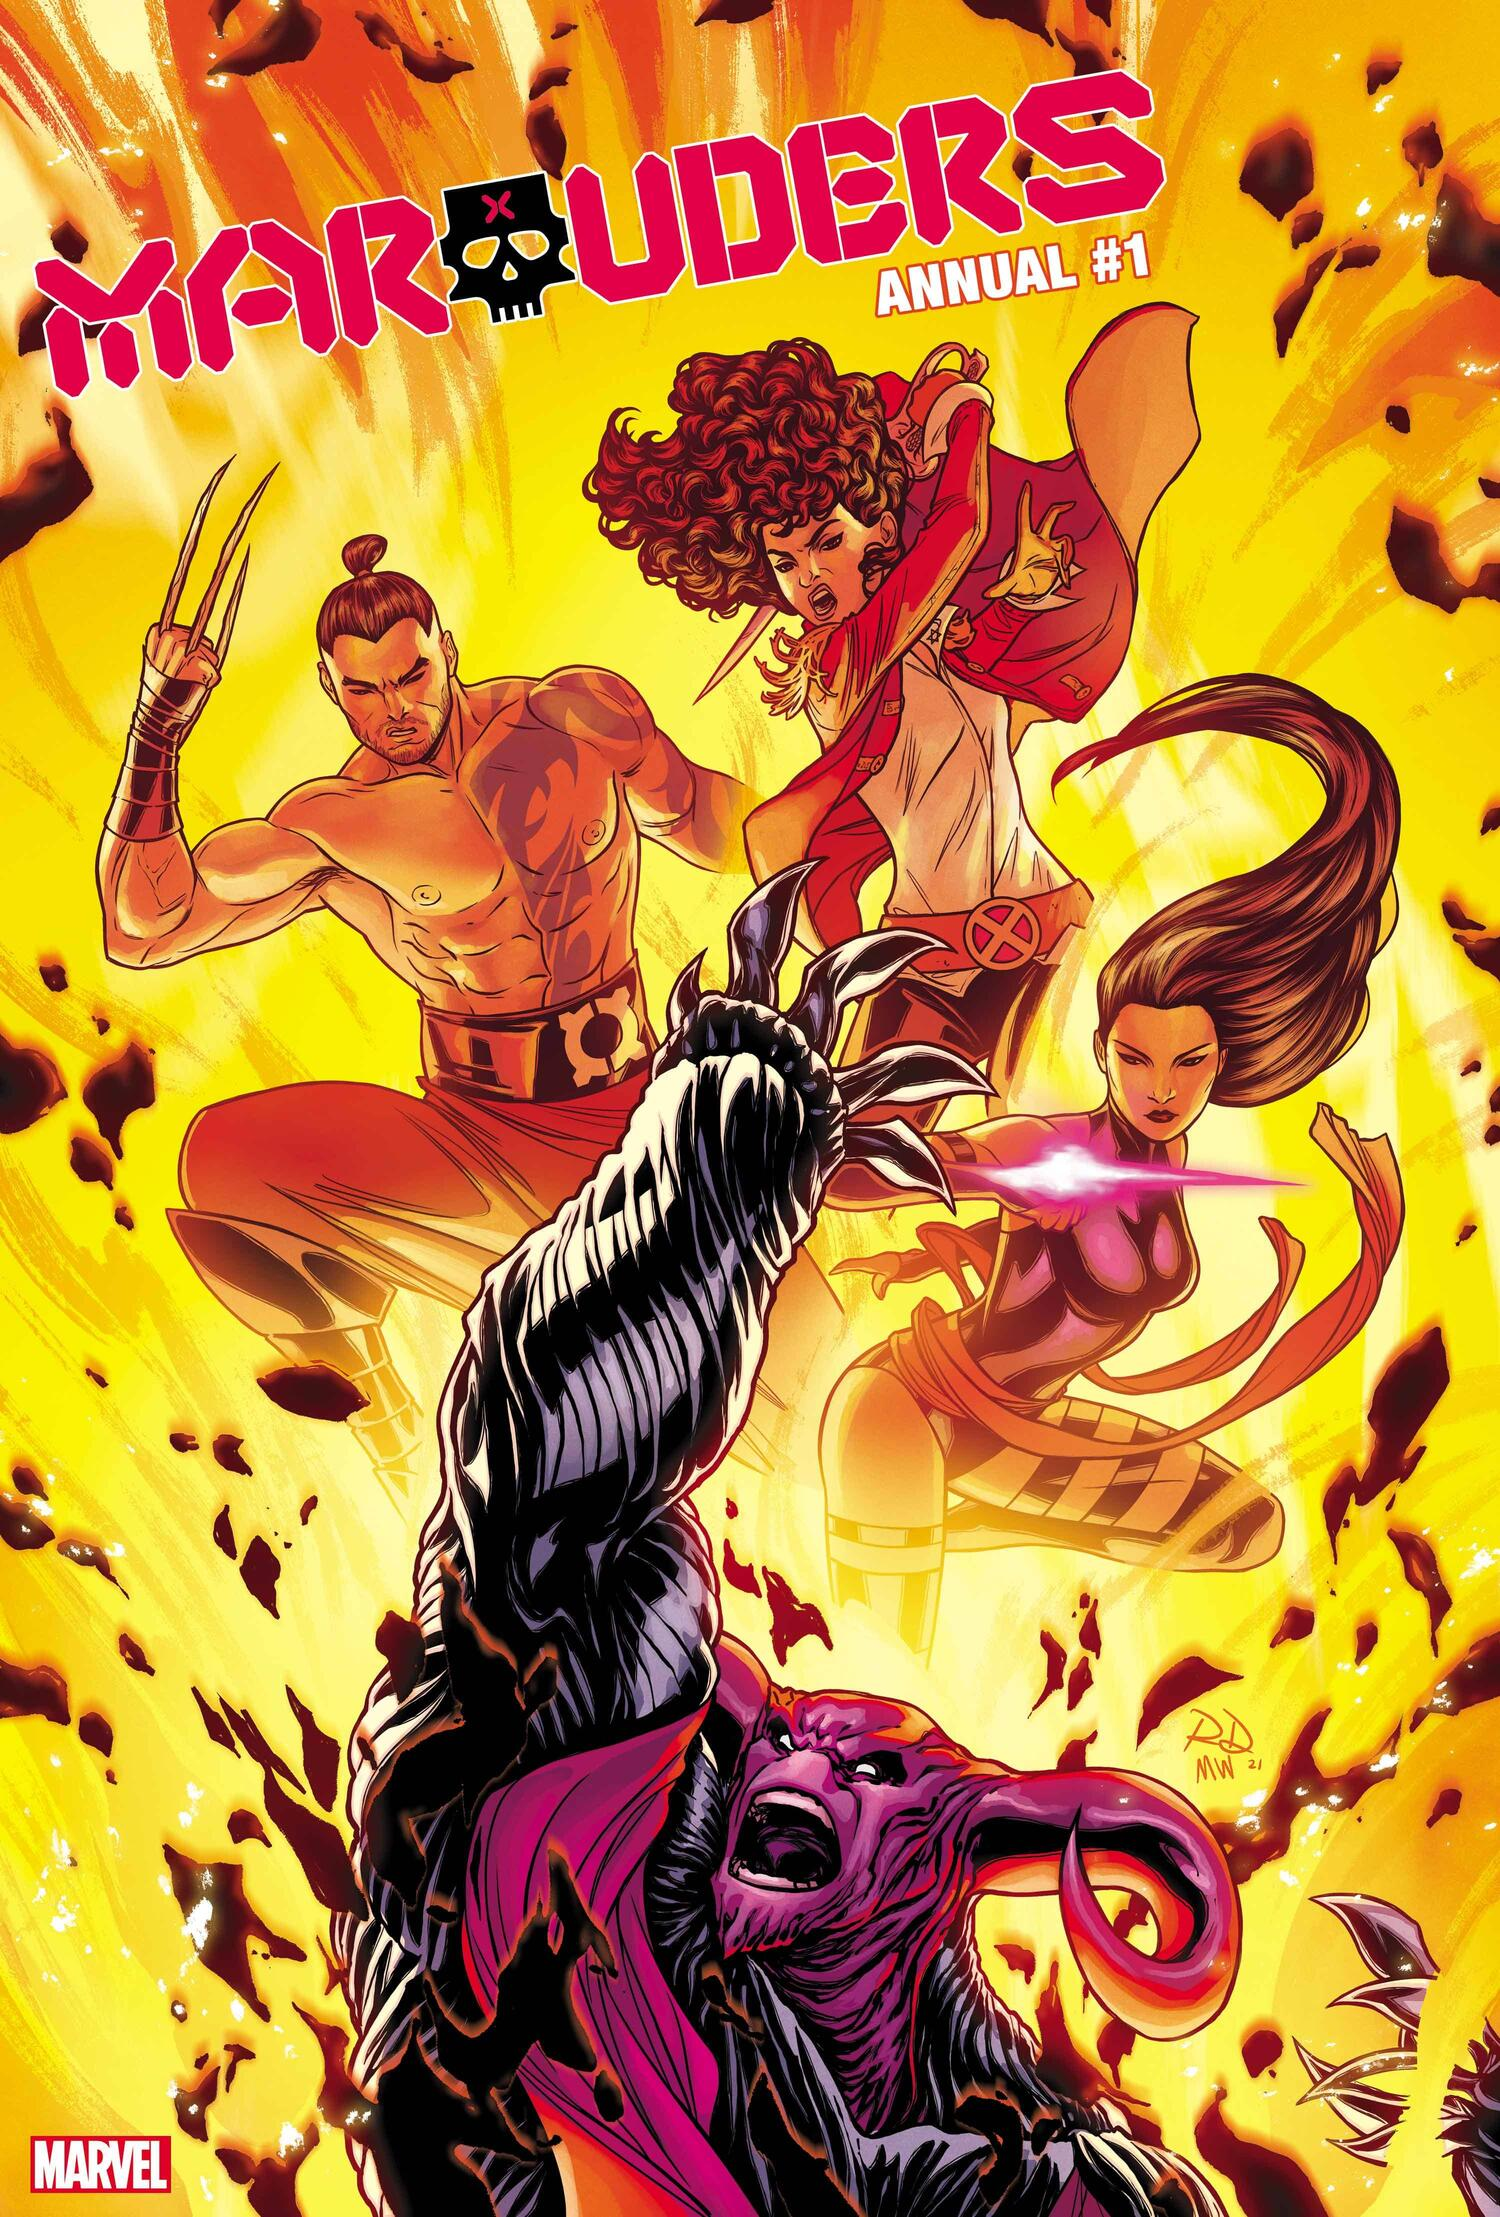 Marauders Annual #1 Cover by Russell Dauterman